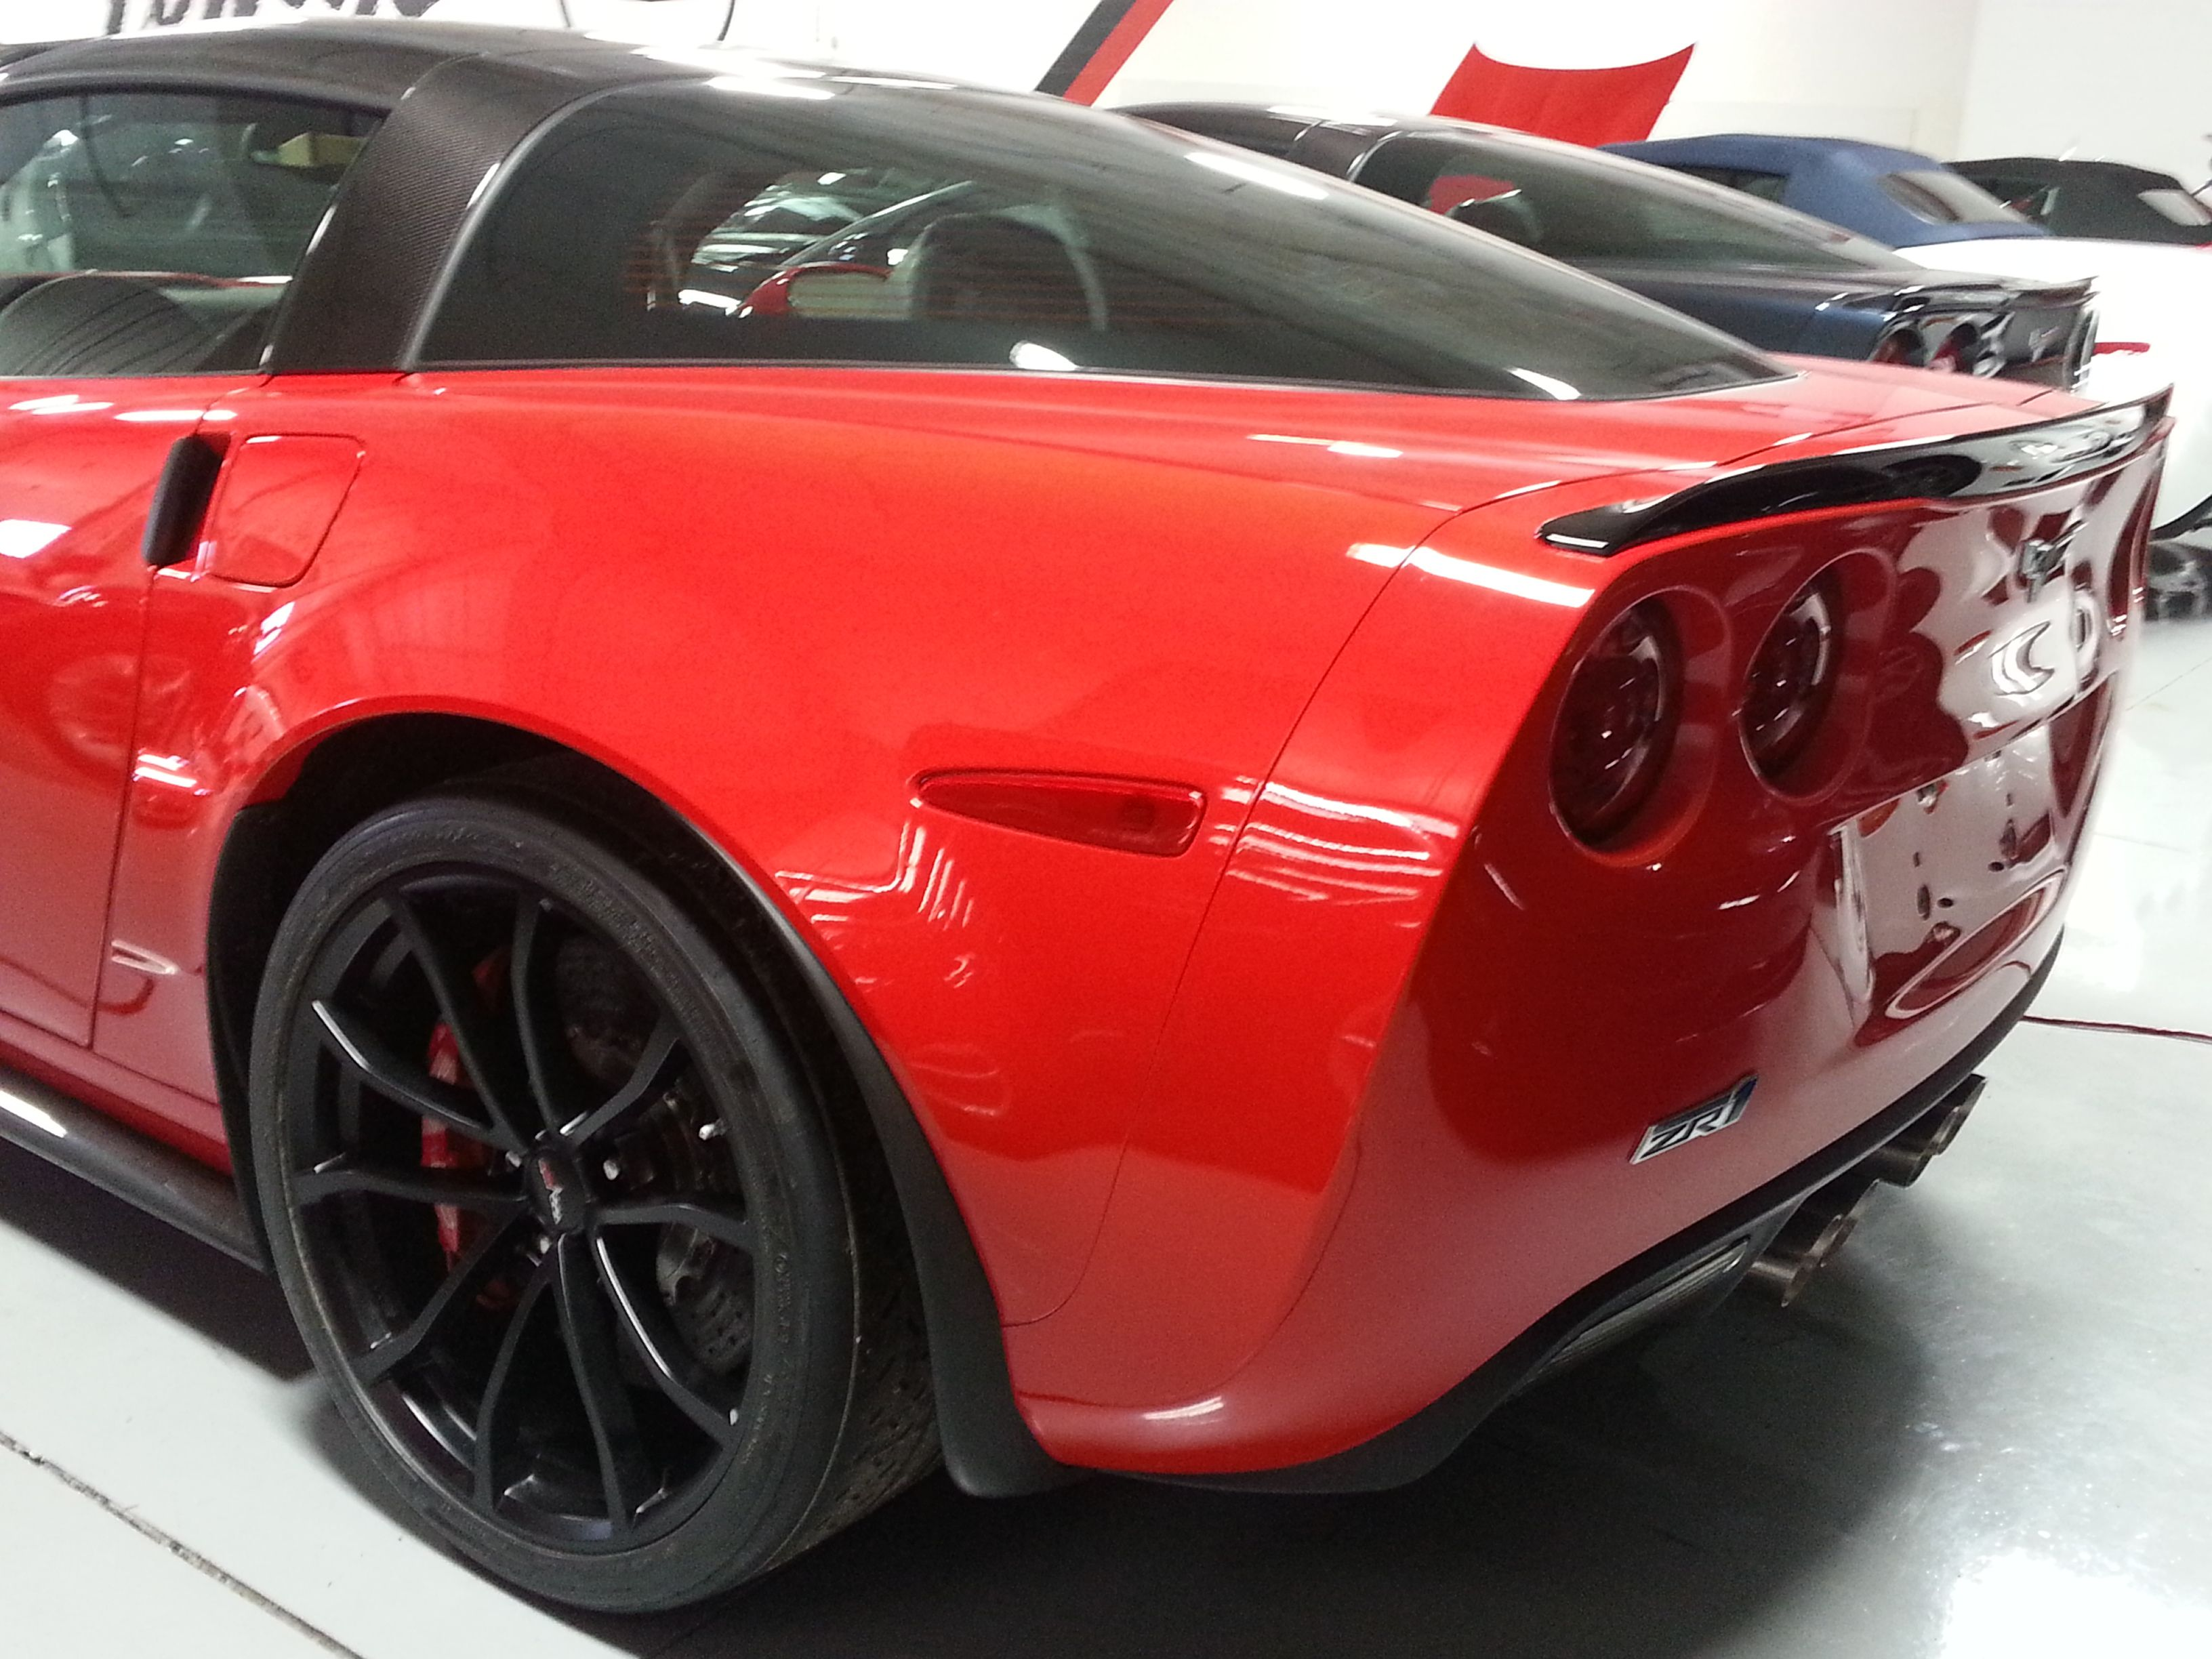 Corvette Zr1 0 60 >> The 2013 Corvette Zr1 Goes From 0 60 In 3 4 Seconds And